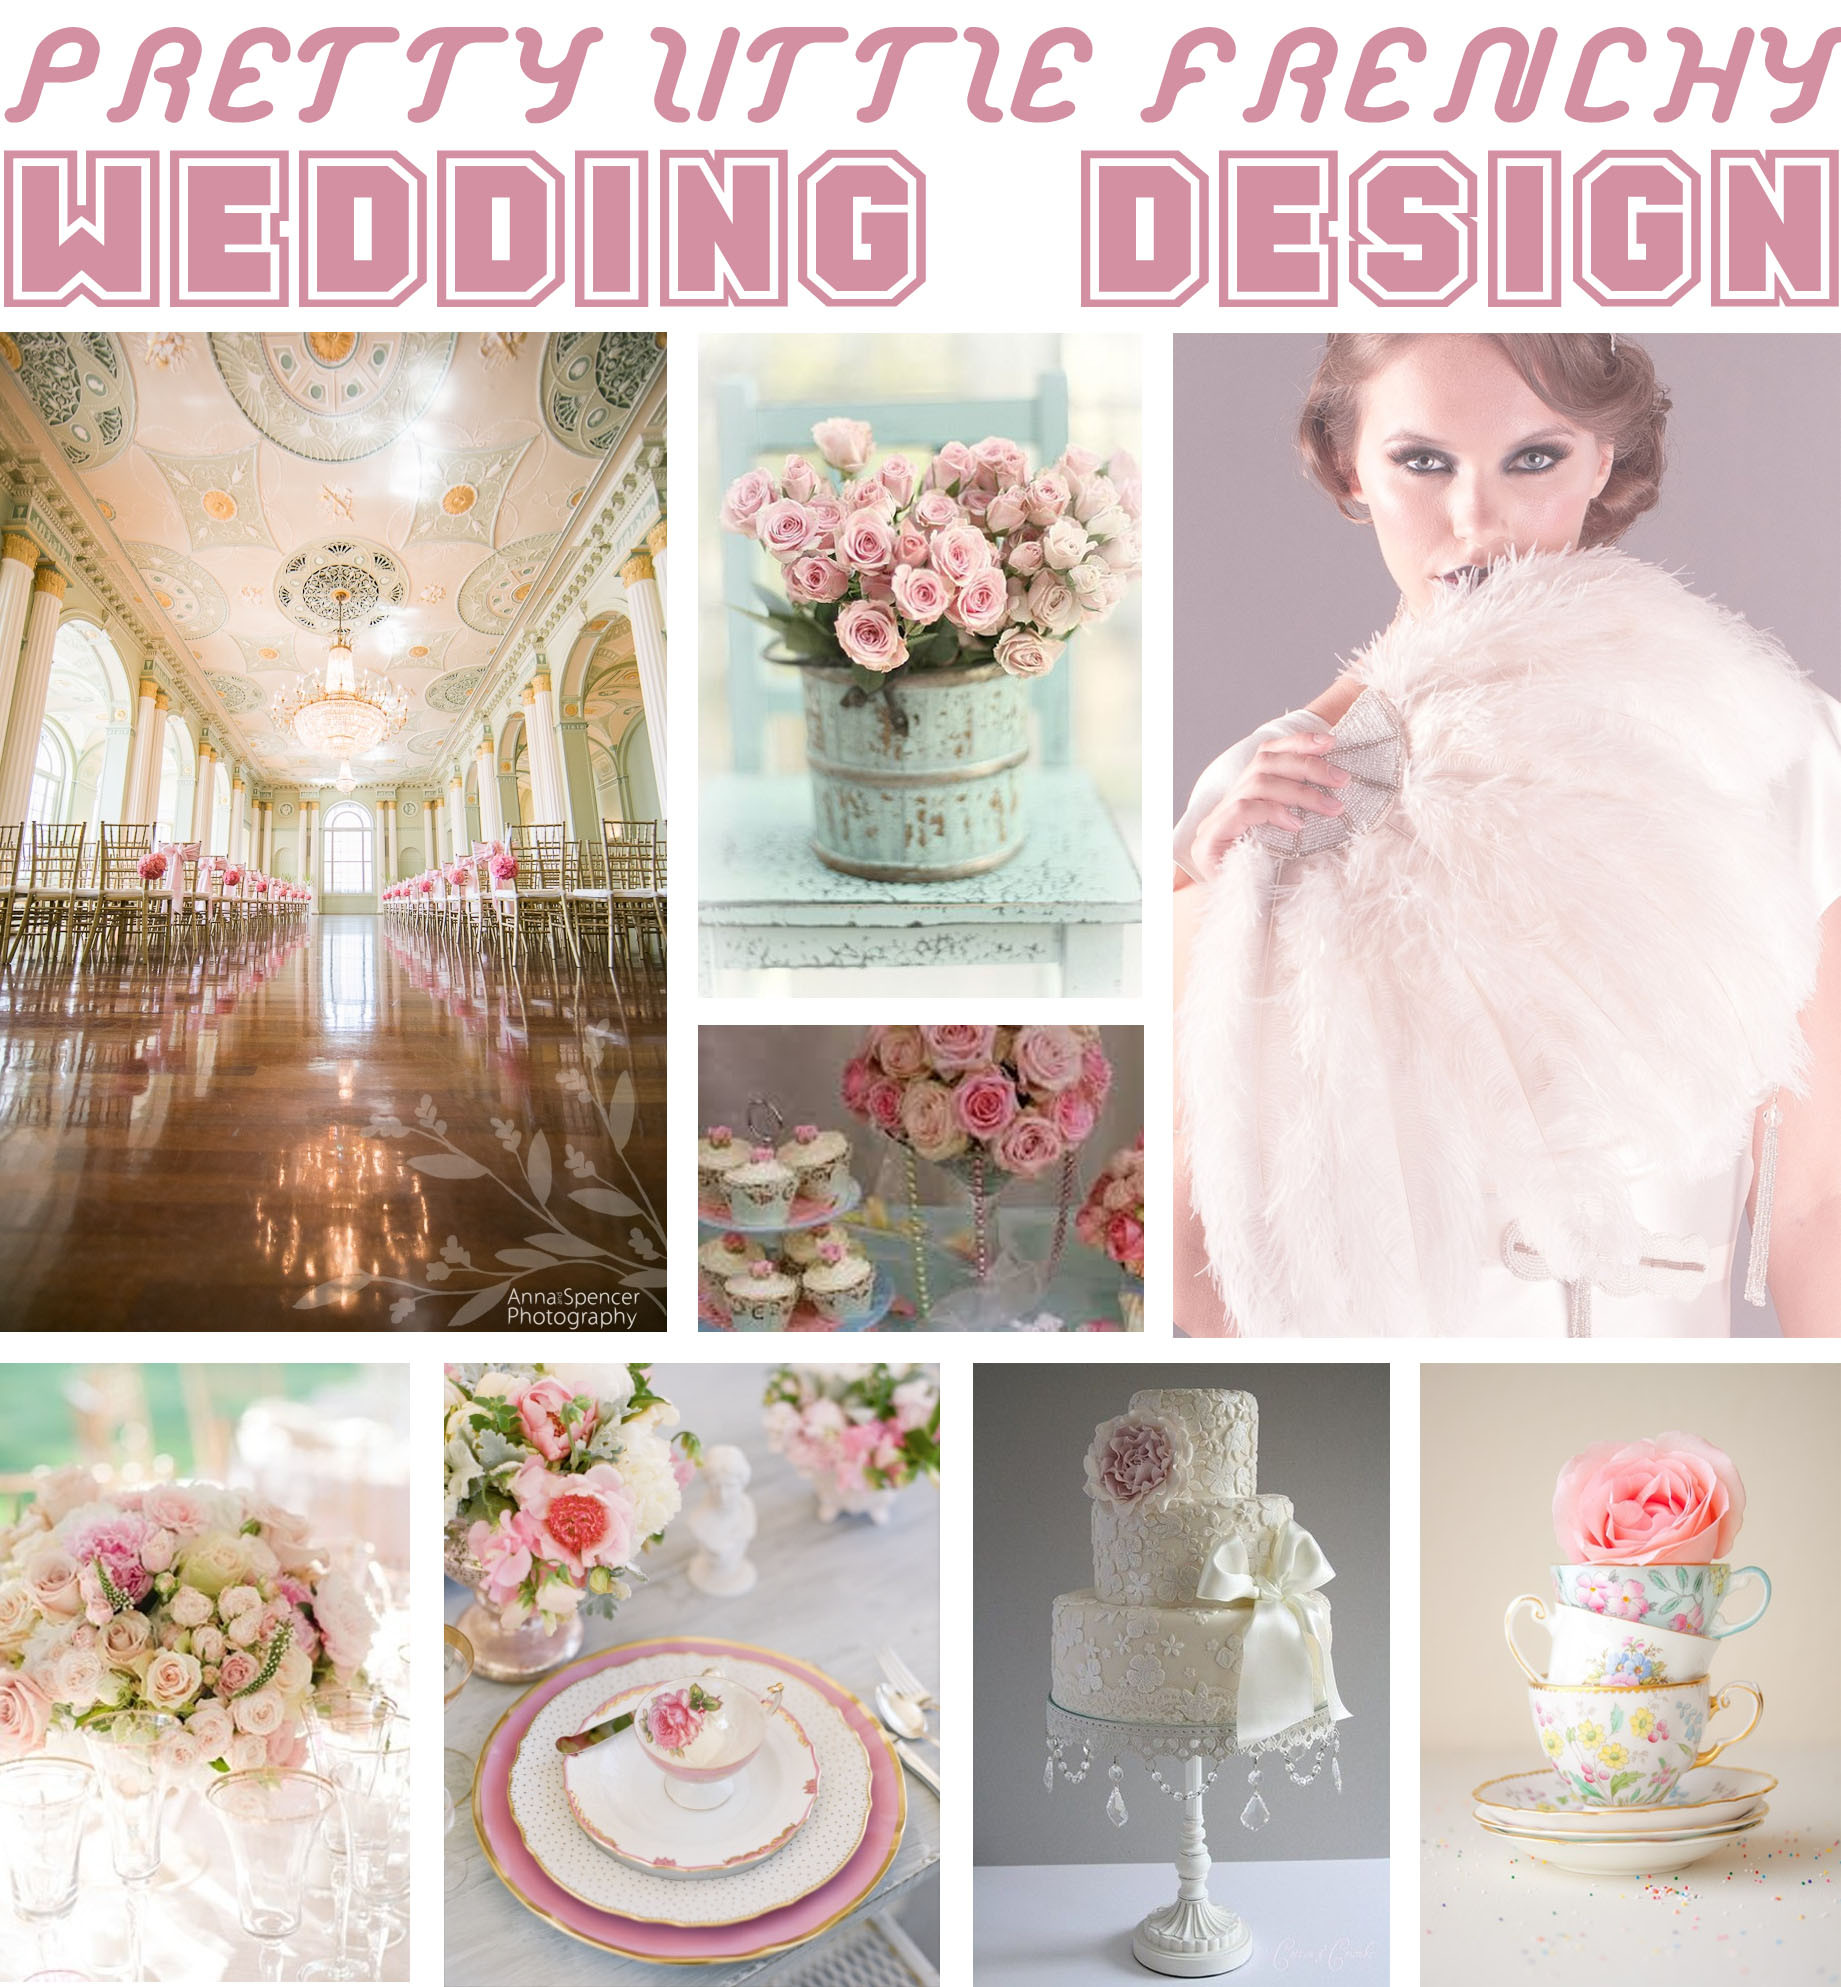 Pastel Wedding Design